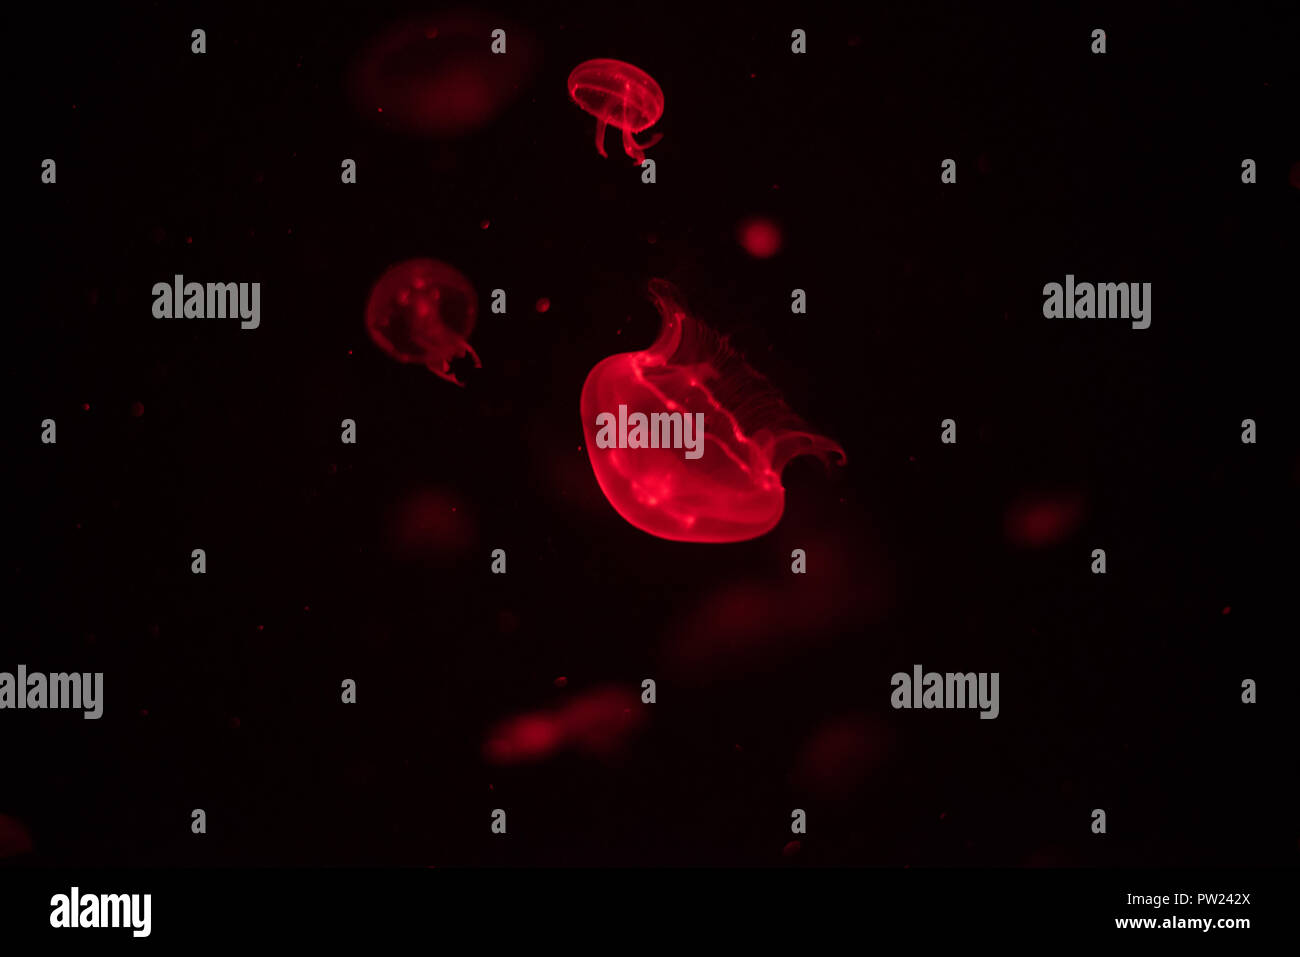 Red jellyfish in dark aquarium with many other jellies floating on the background - Stock Image